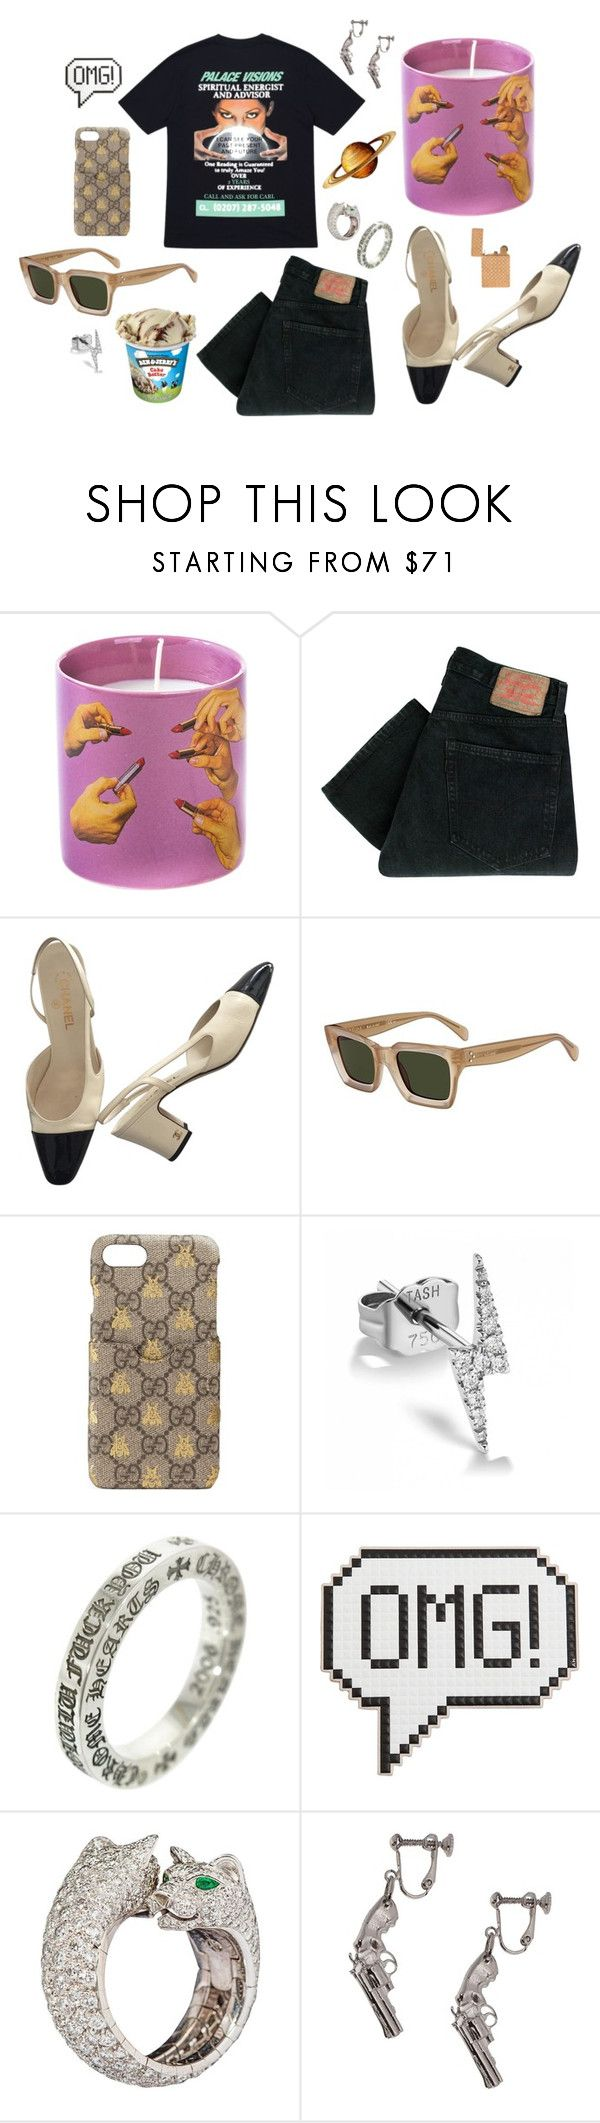 """u aint got no alibi"" by lusciousbrat ❤ liked on Polyvore featuring Seletti, Levi's, Chanel, CÉLINE, Gucci, Maria Tash, Chrome Hearts, Anya Hindmarch, Cartier and Yves Saint Laurent"